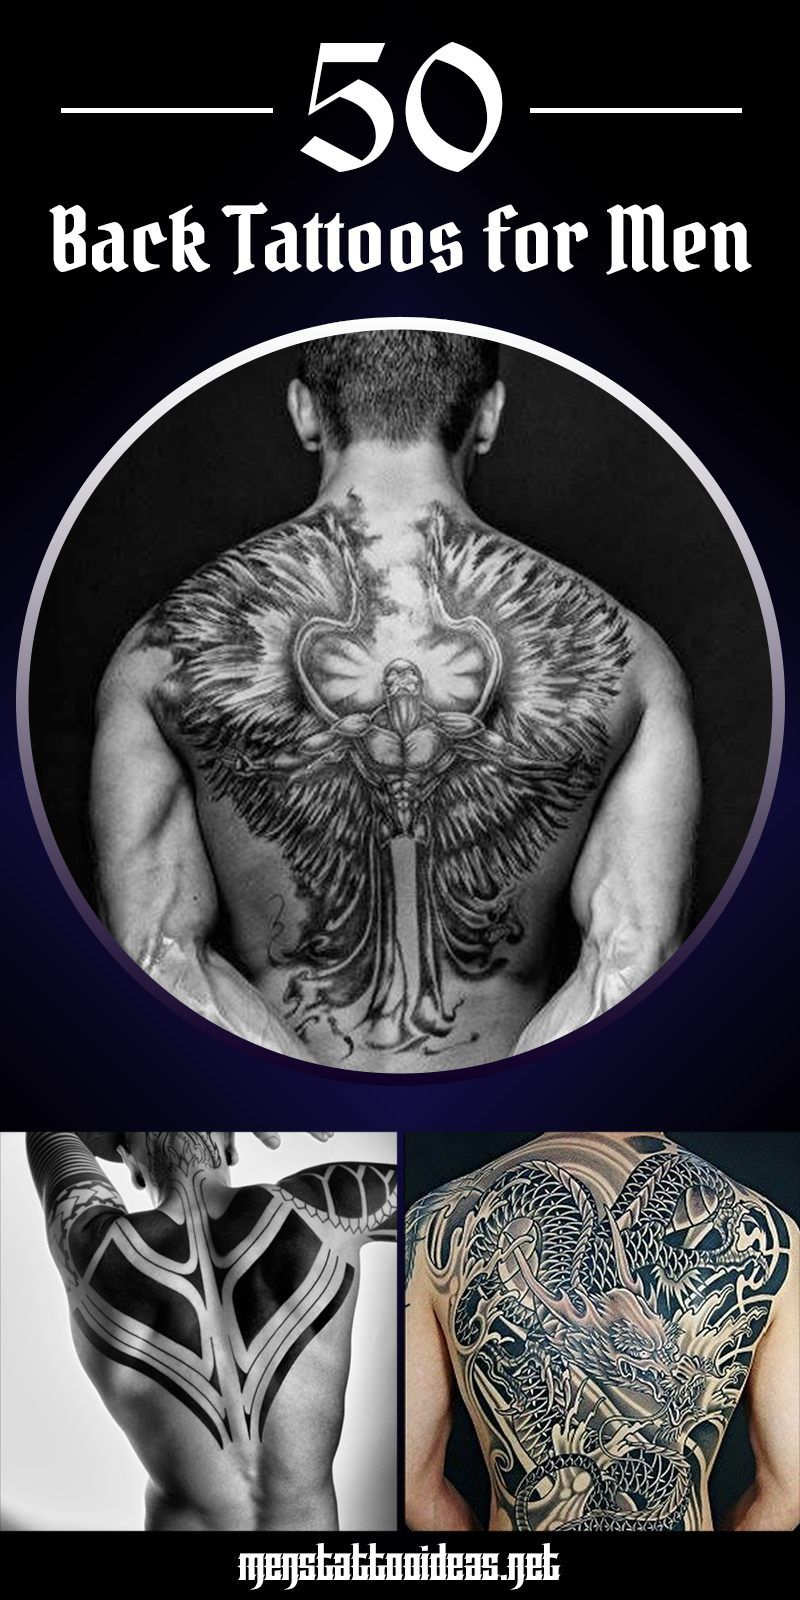 back tattoos for men ideas and designs for guys tattoo. Black Bedroom Furniture Sets. Home Design Ideas